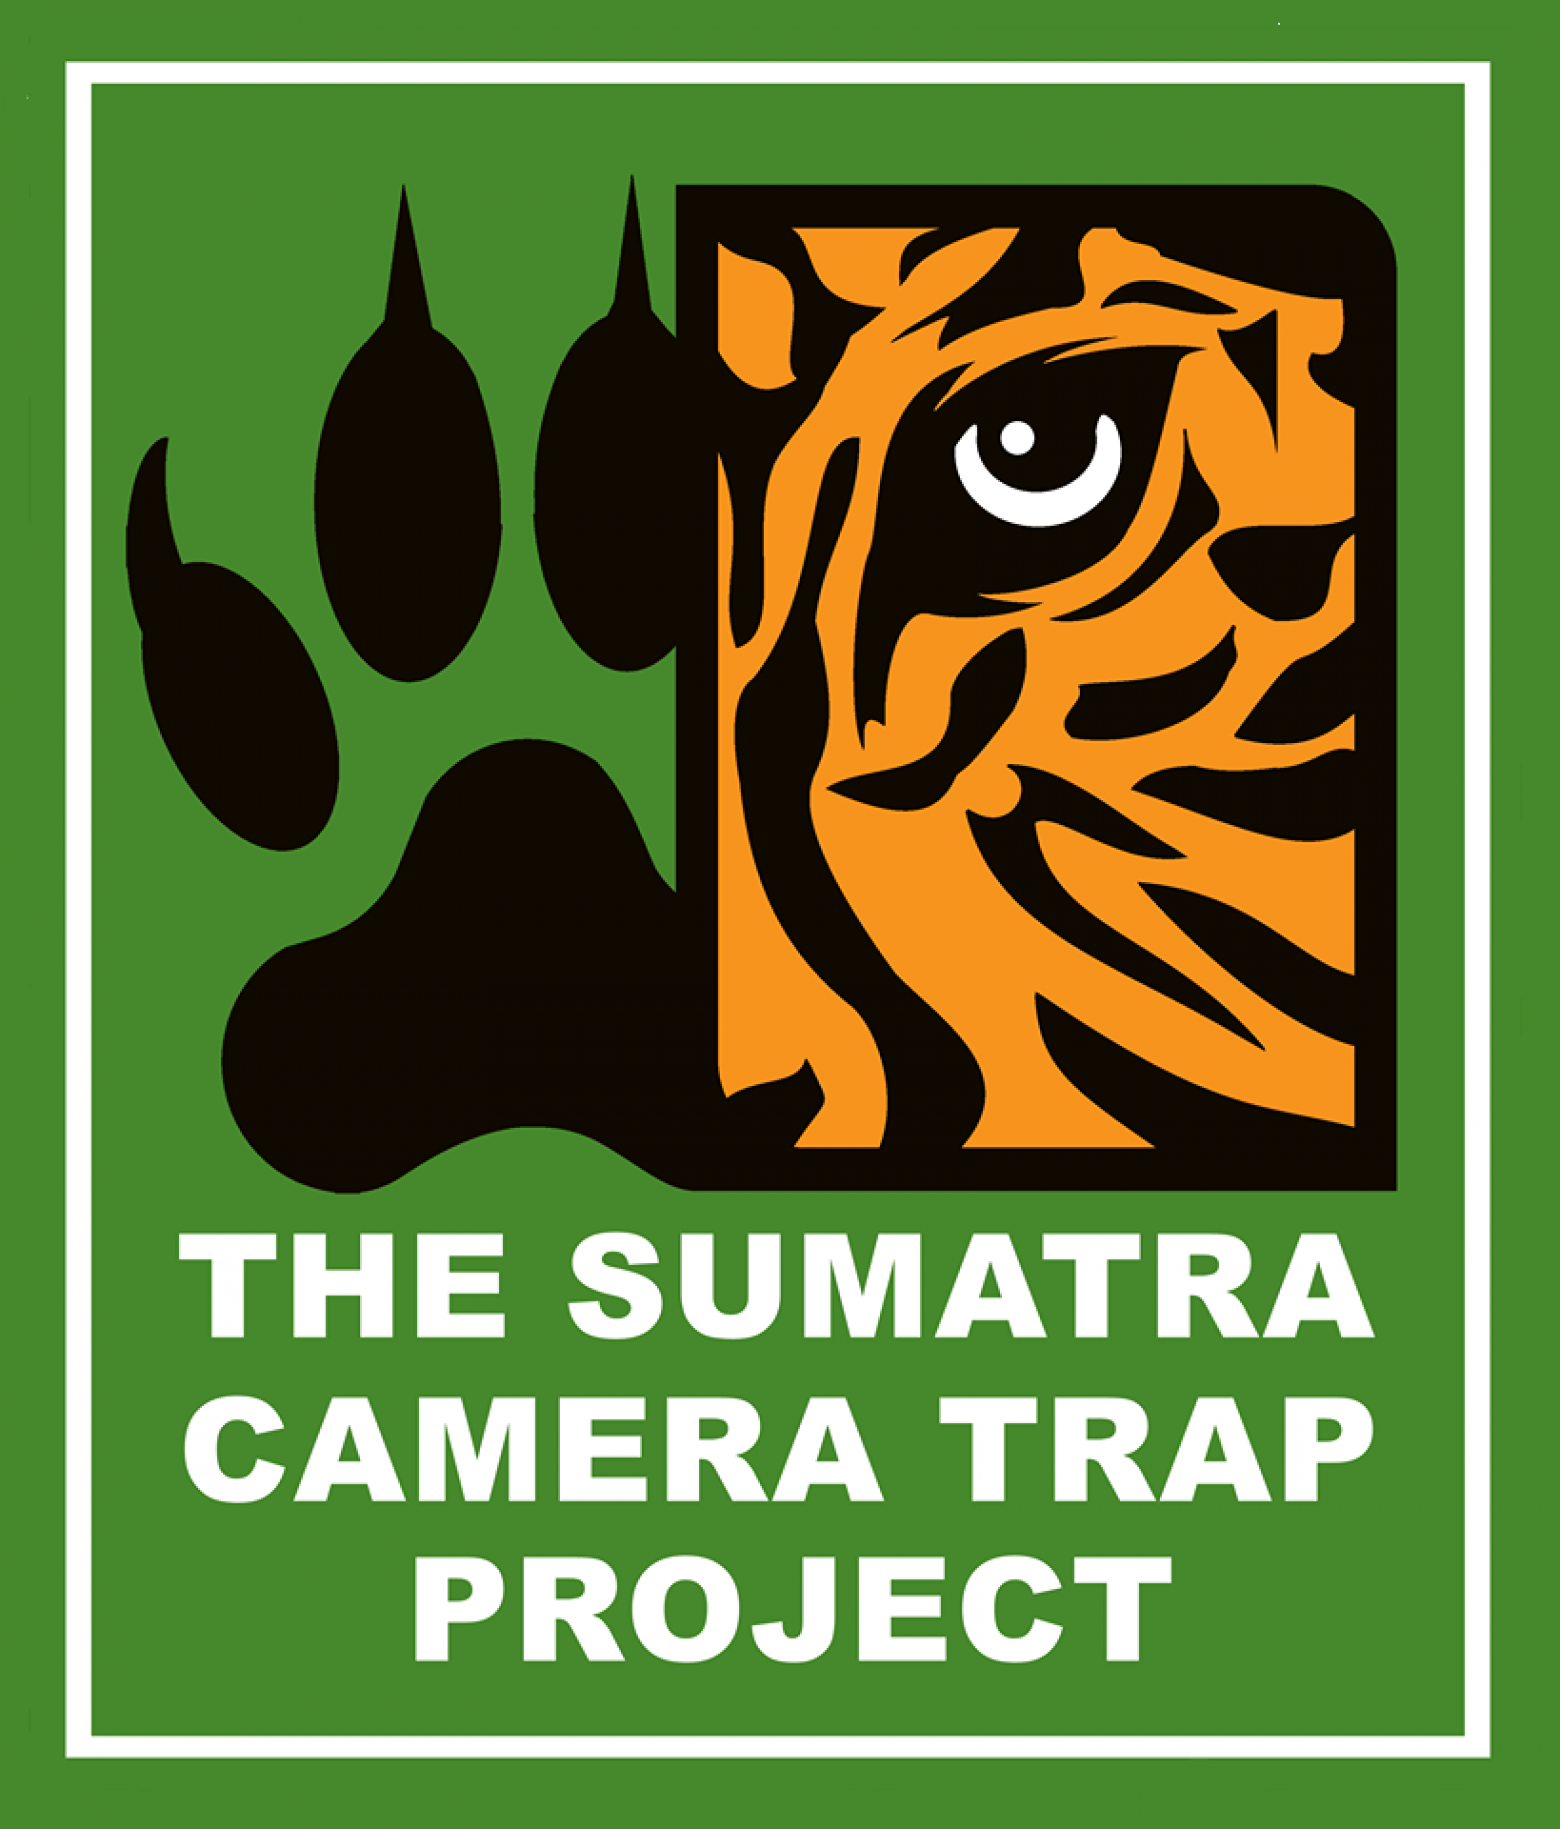 The Sumatra Camera Trap Project